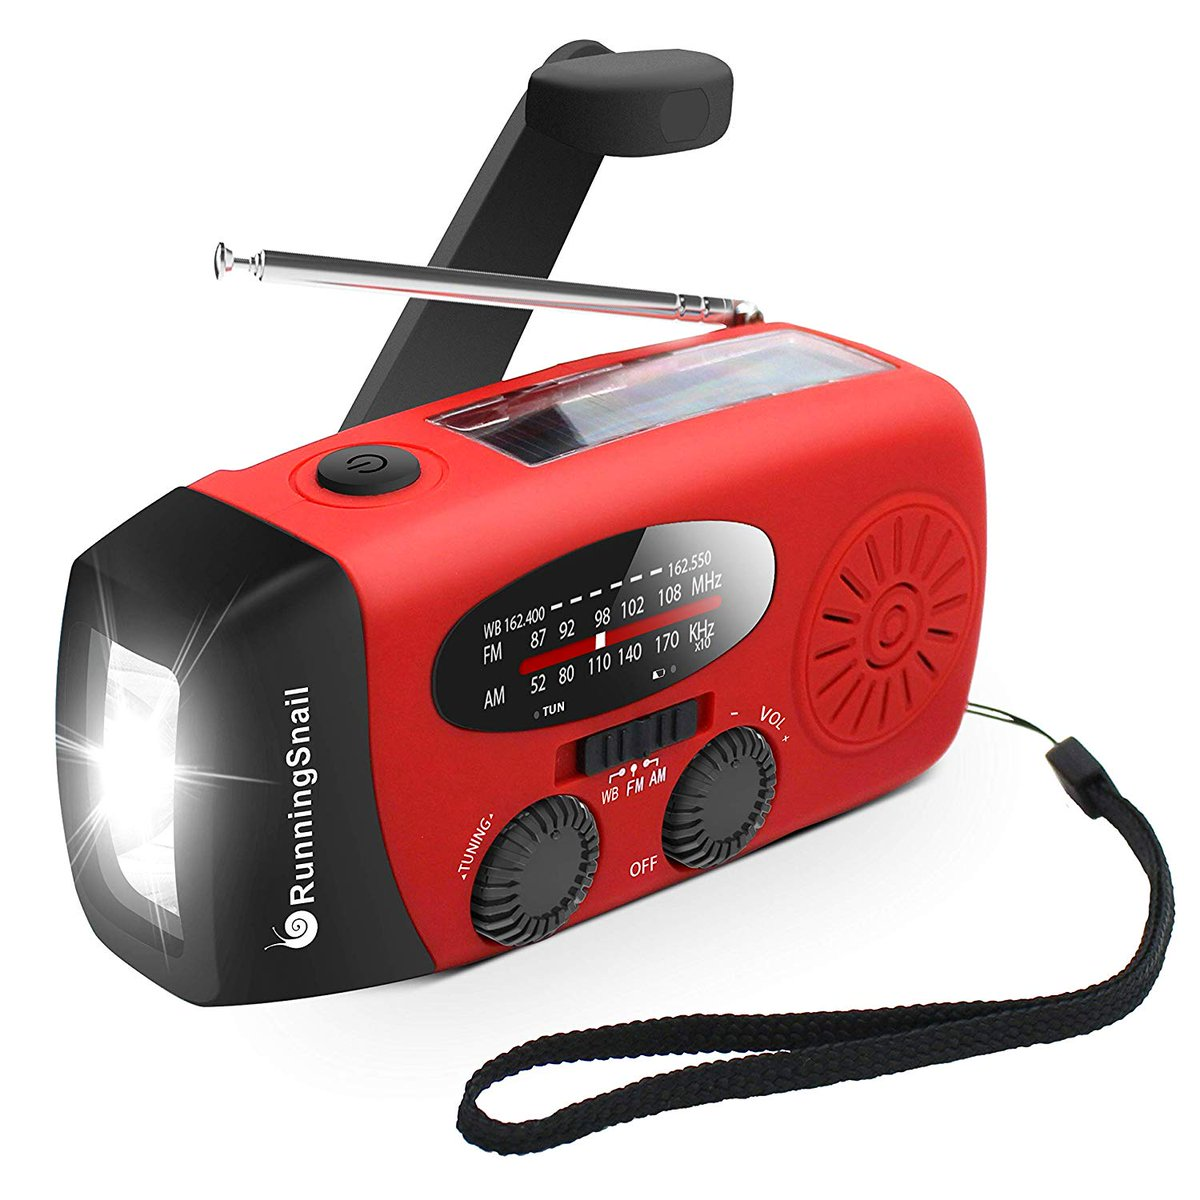 Solar Weather Radio :  #love #instagood #me #cute #tbt #photooftheday #instamood #iphonesia #tweegram #picoftheday #igers #girl #beautiful #instadaily #summer #instagramhub #iphoneonly #follow #igdaily #bestoftheday #happy #picstitch #tagblender #jj #sky